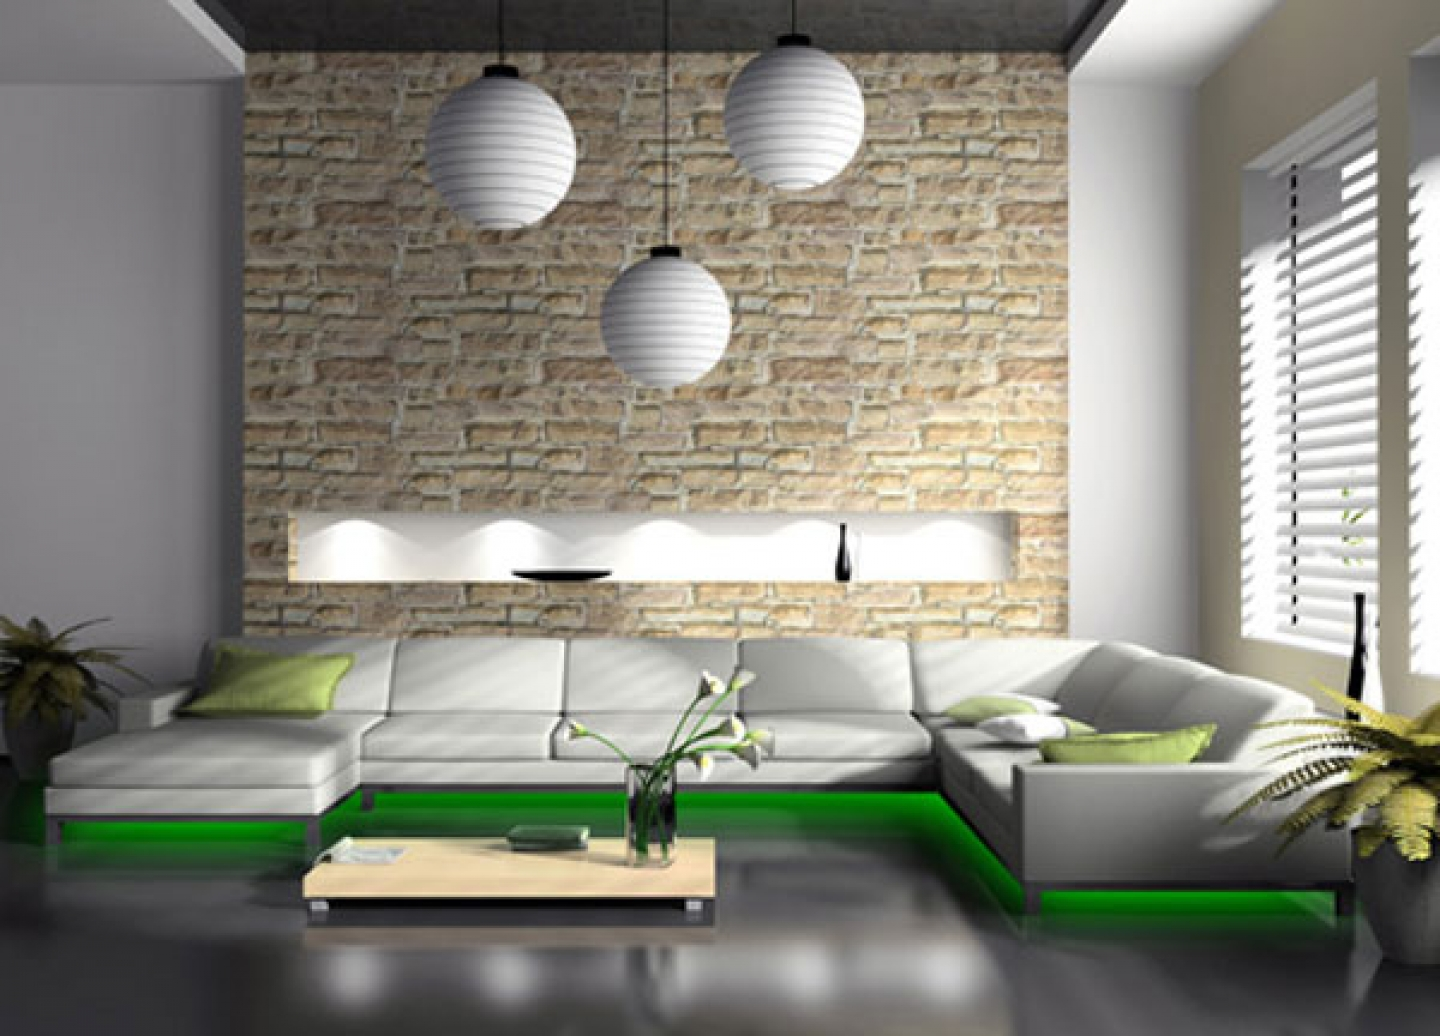 lamps-for-bright-interior-design-lighting-decor-for-designing-my-living-room-pictures-for-living-room-design-liv-on-interior-lamp-design